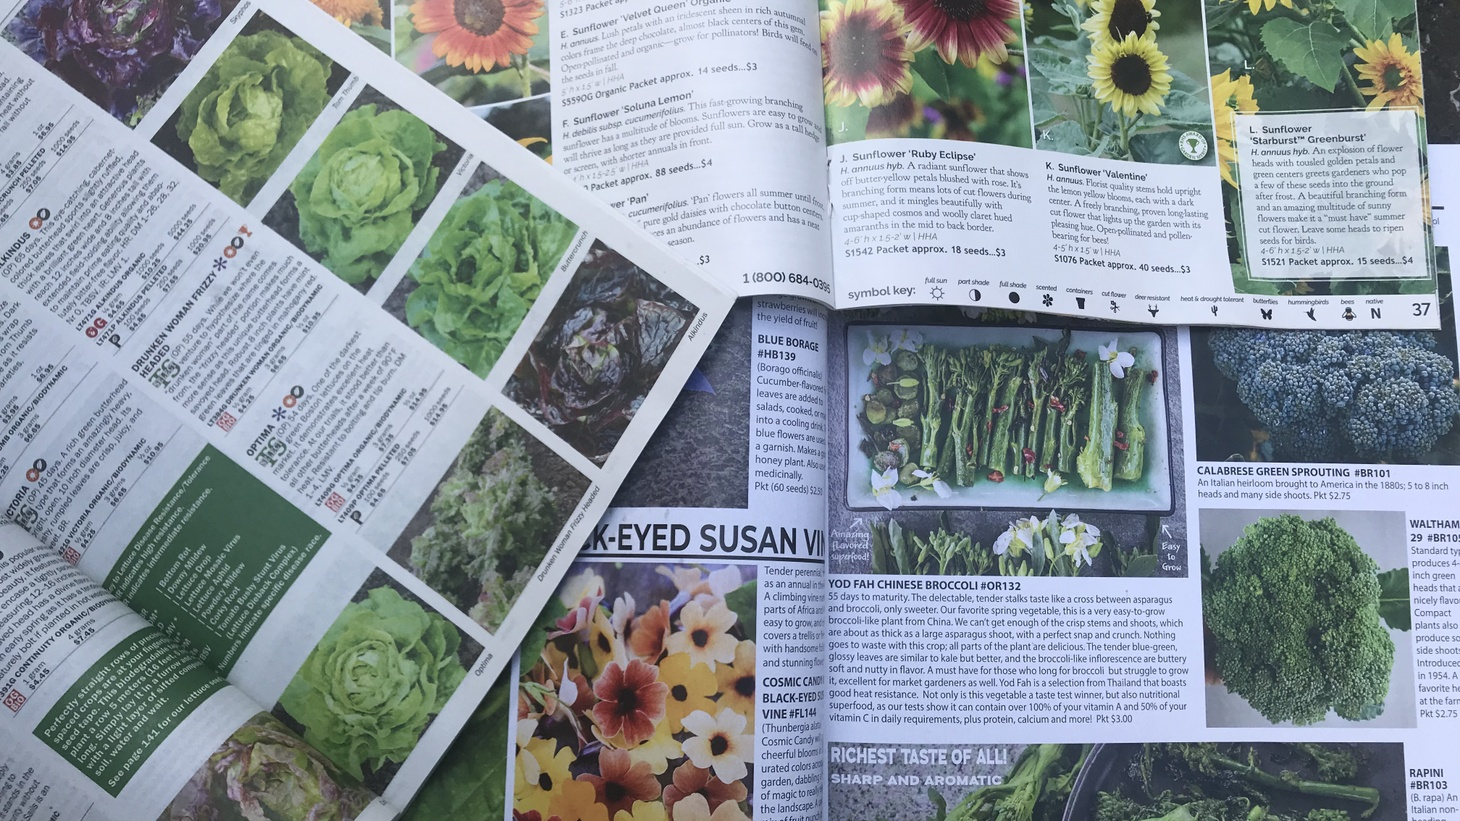 Gardener Kazi Pitelka recommends planting seeds from heirloom or hybrid varieties, which can be bought from a seed catalog for winter's leafy greens.